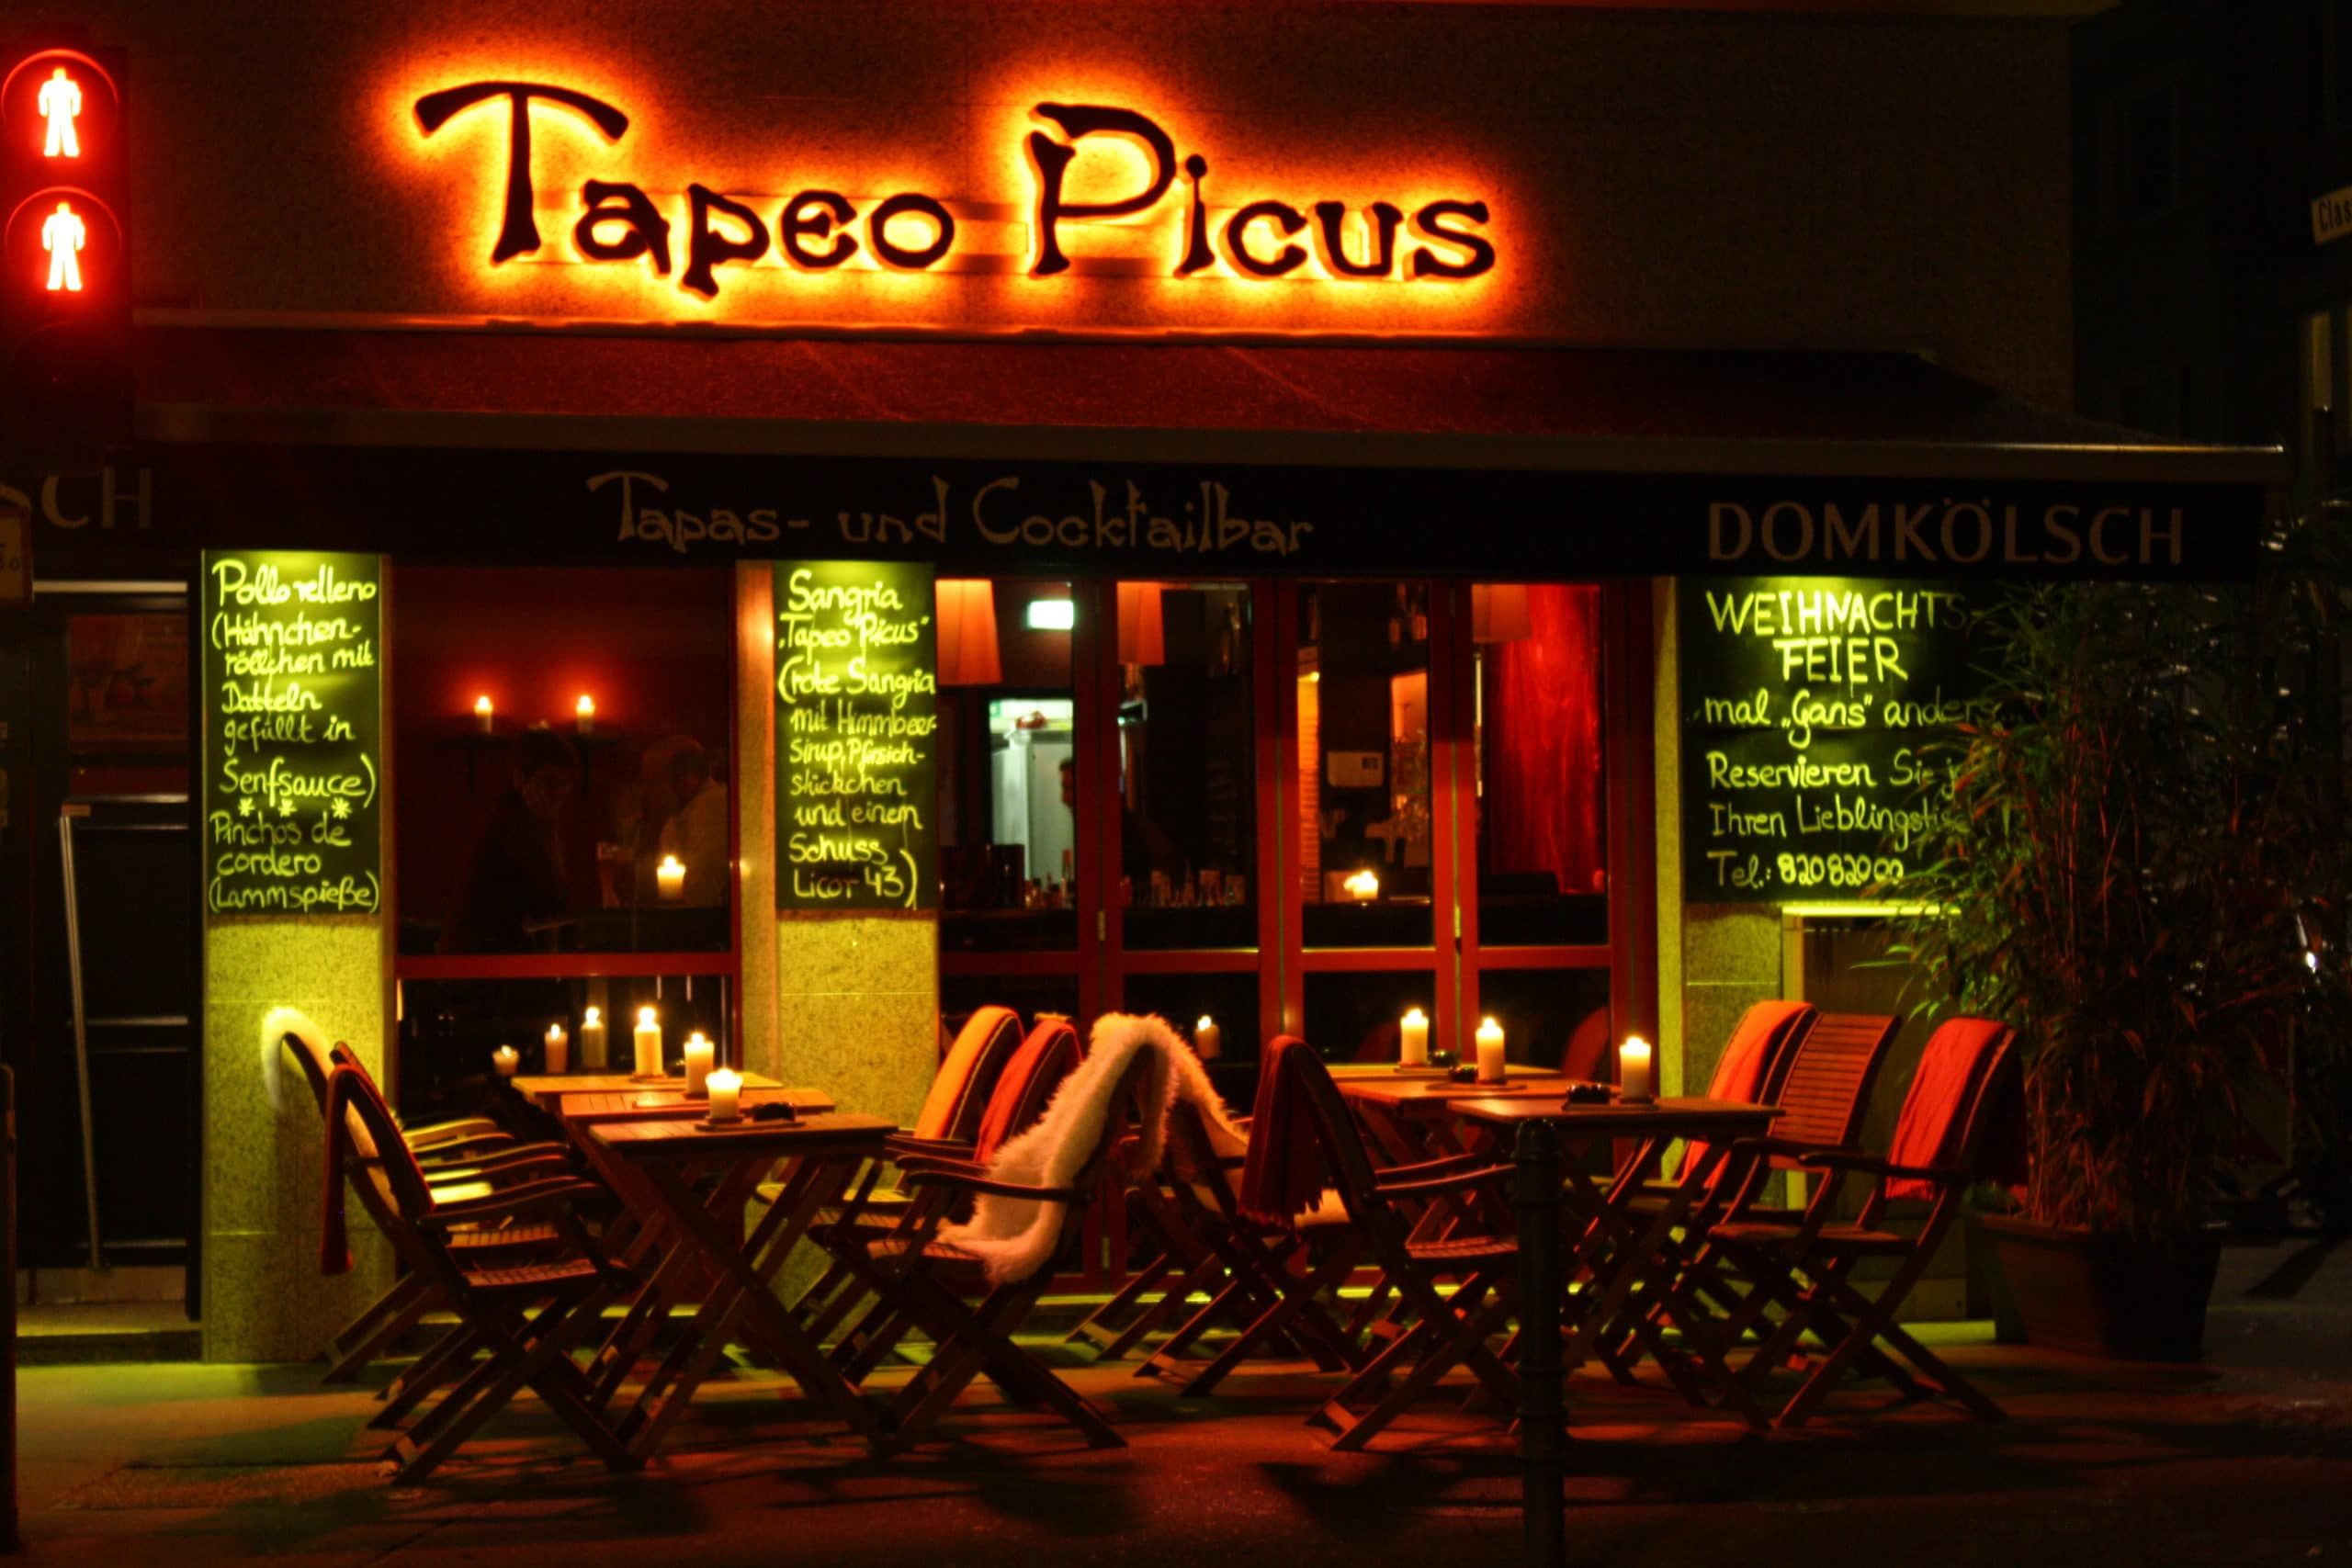 Tape Picus - Cocktails & Tapas in Köln